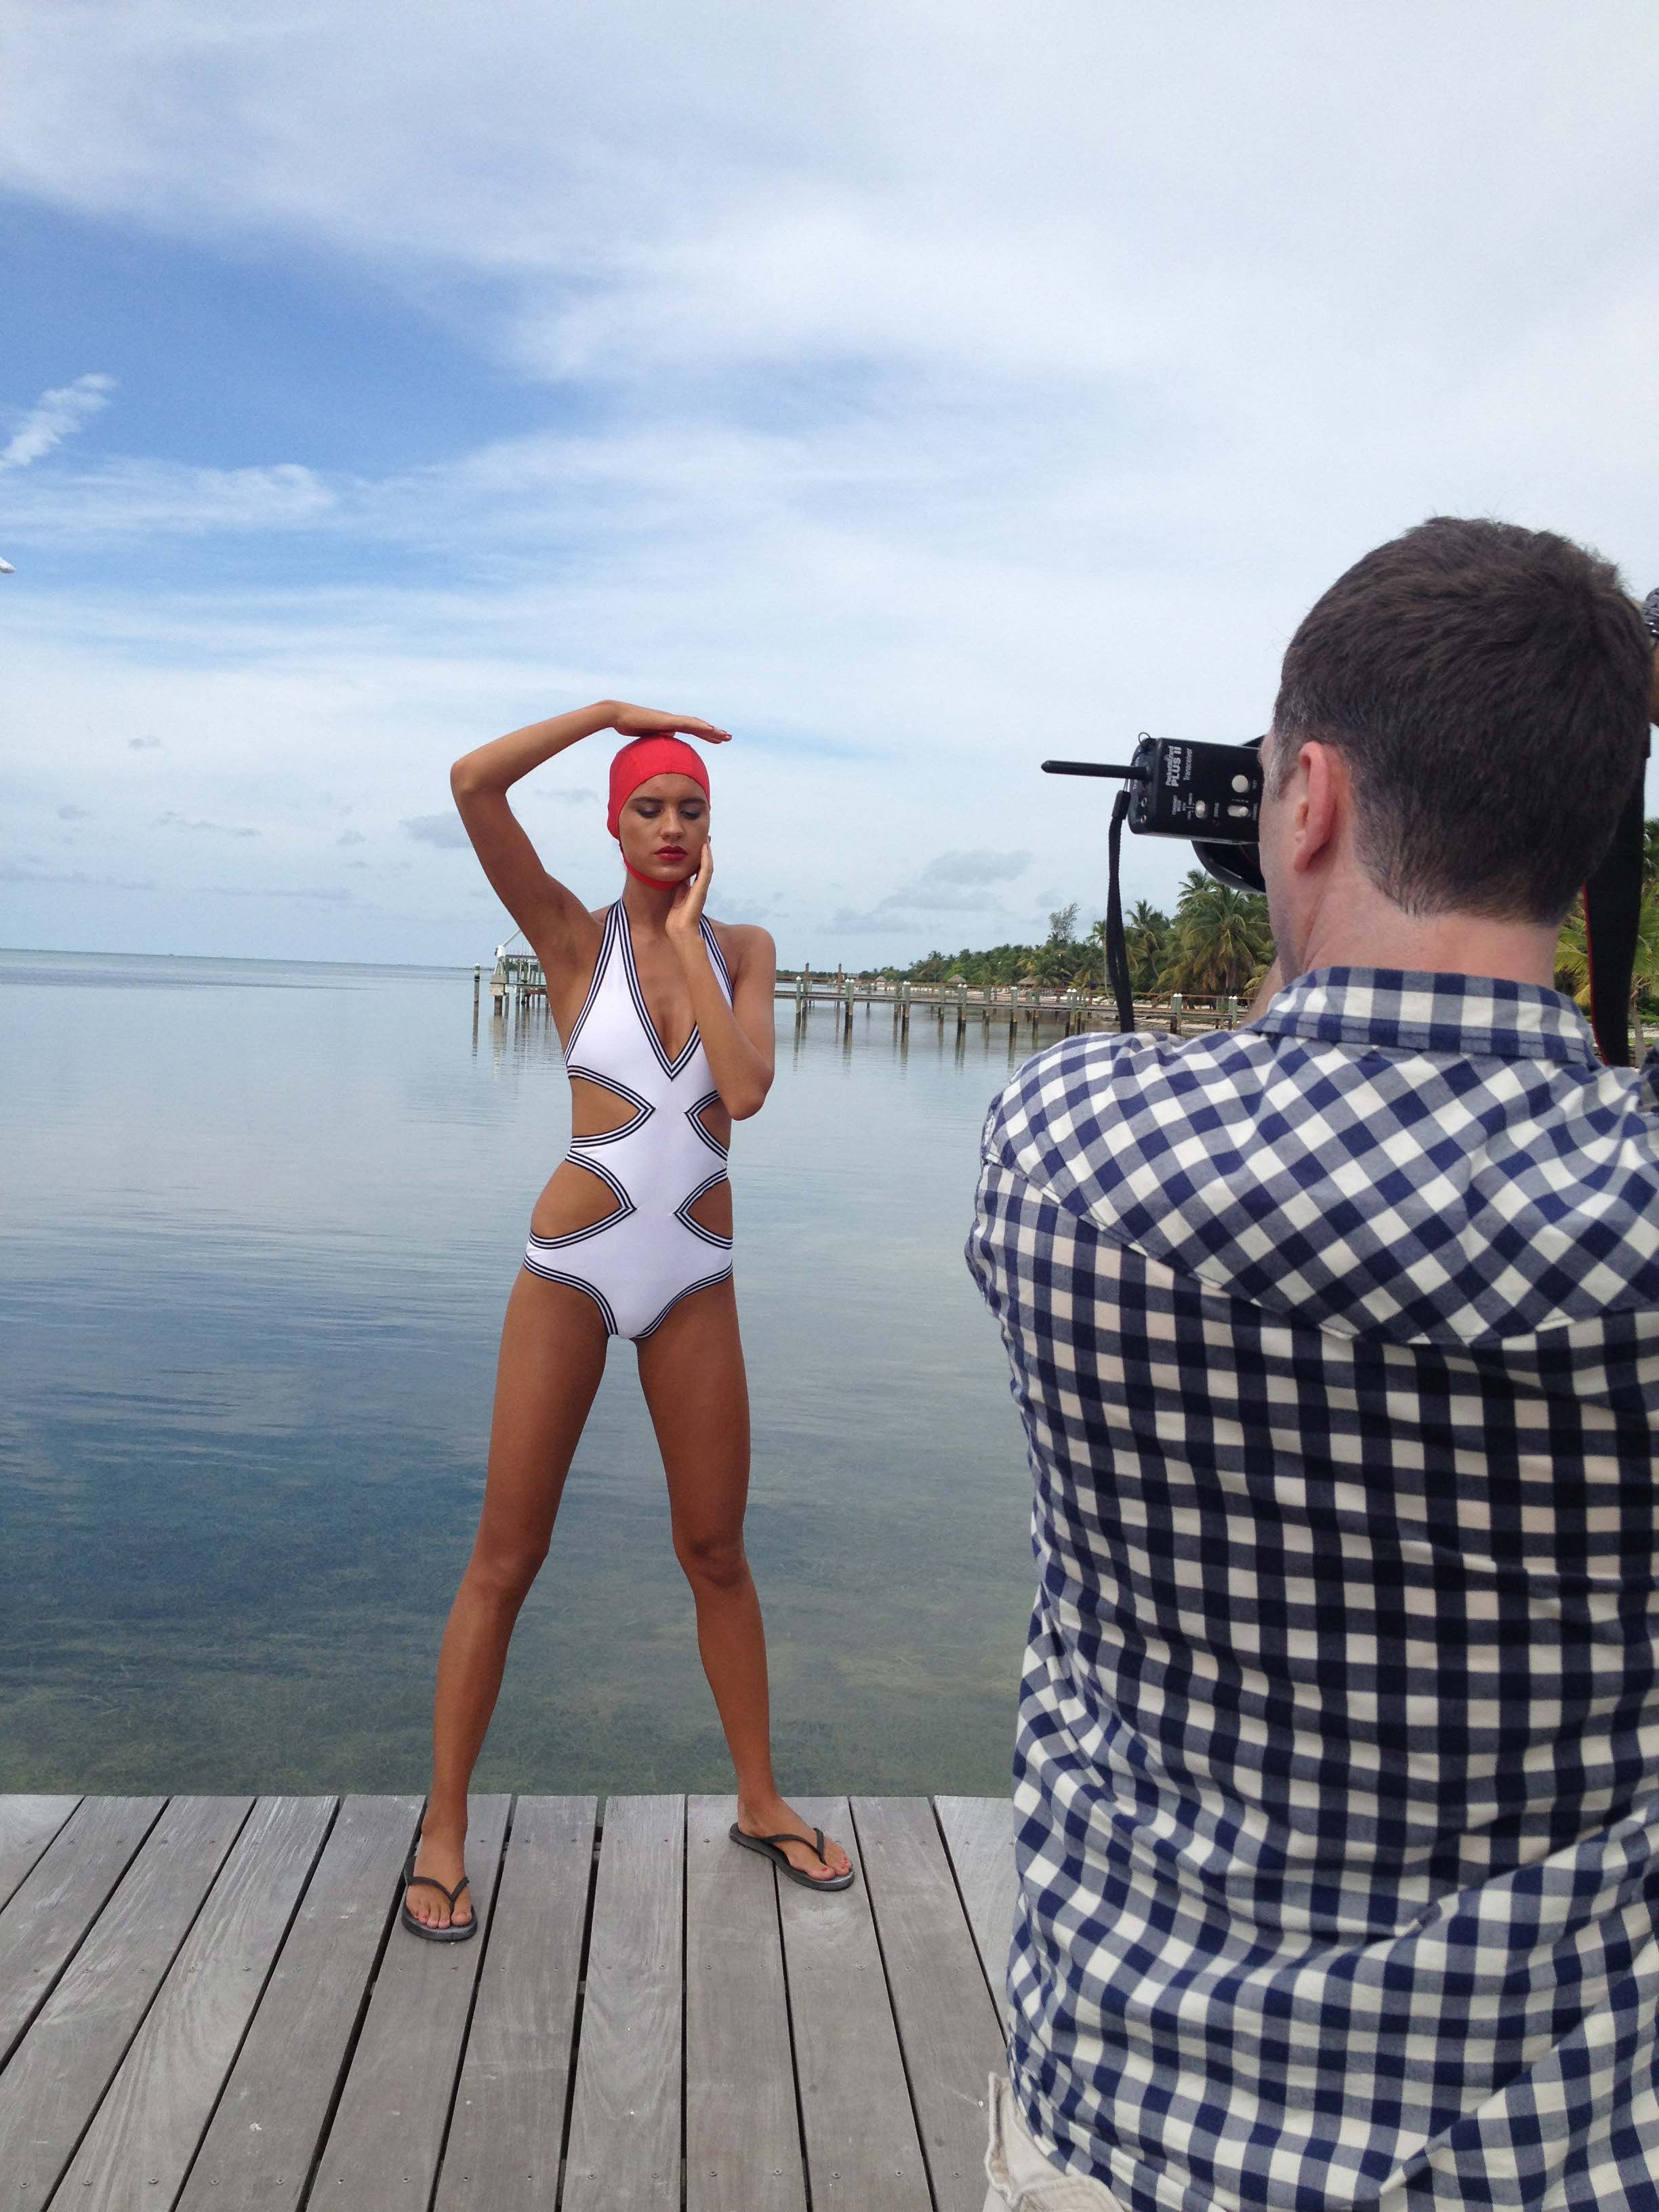 Karla Colletto on location in Islamorada, FL